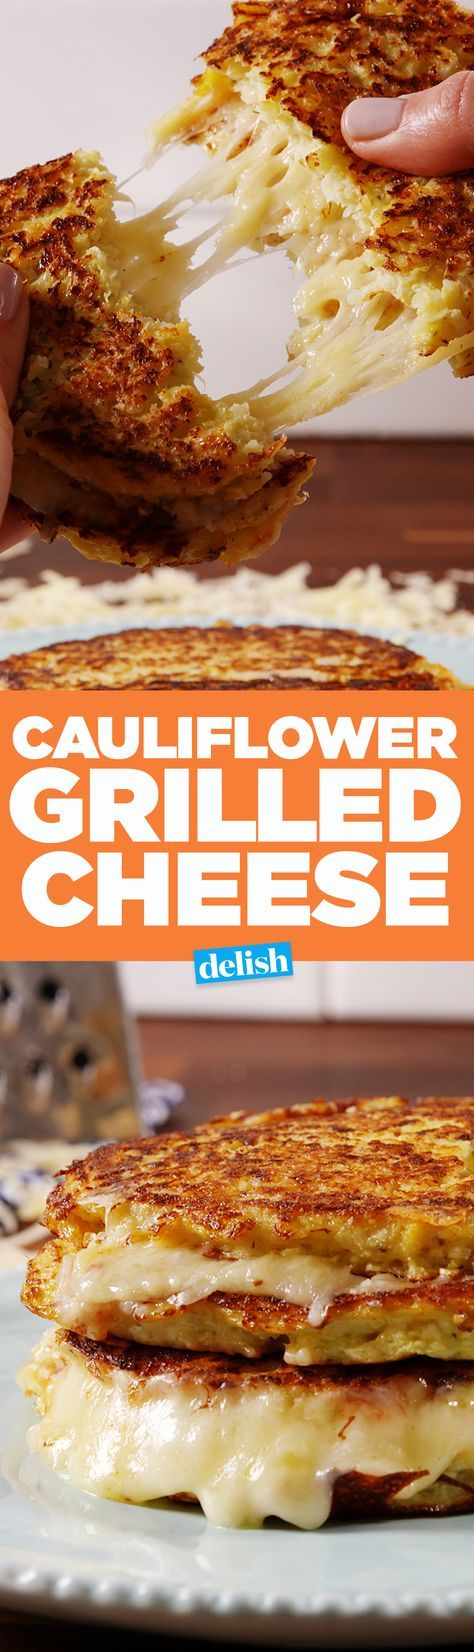 Cauliflower grilled cheese proves bread is overrated. Get the low-carb recipe on Delish.com.